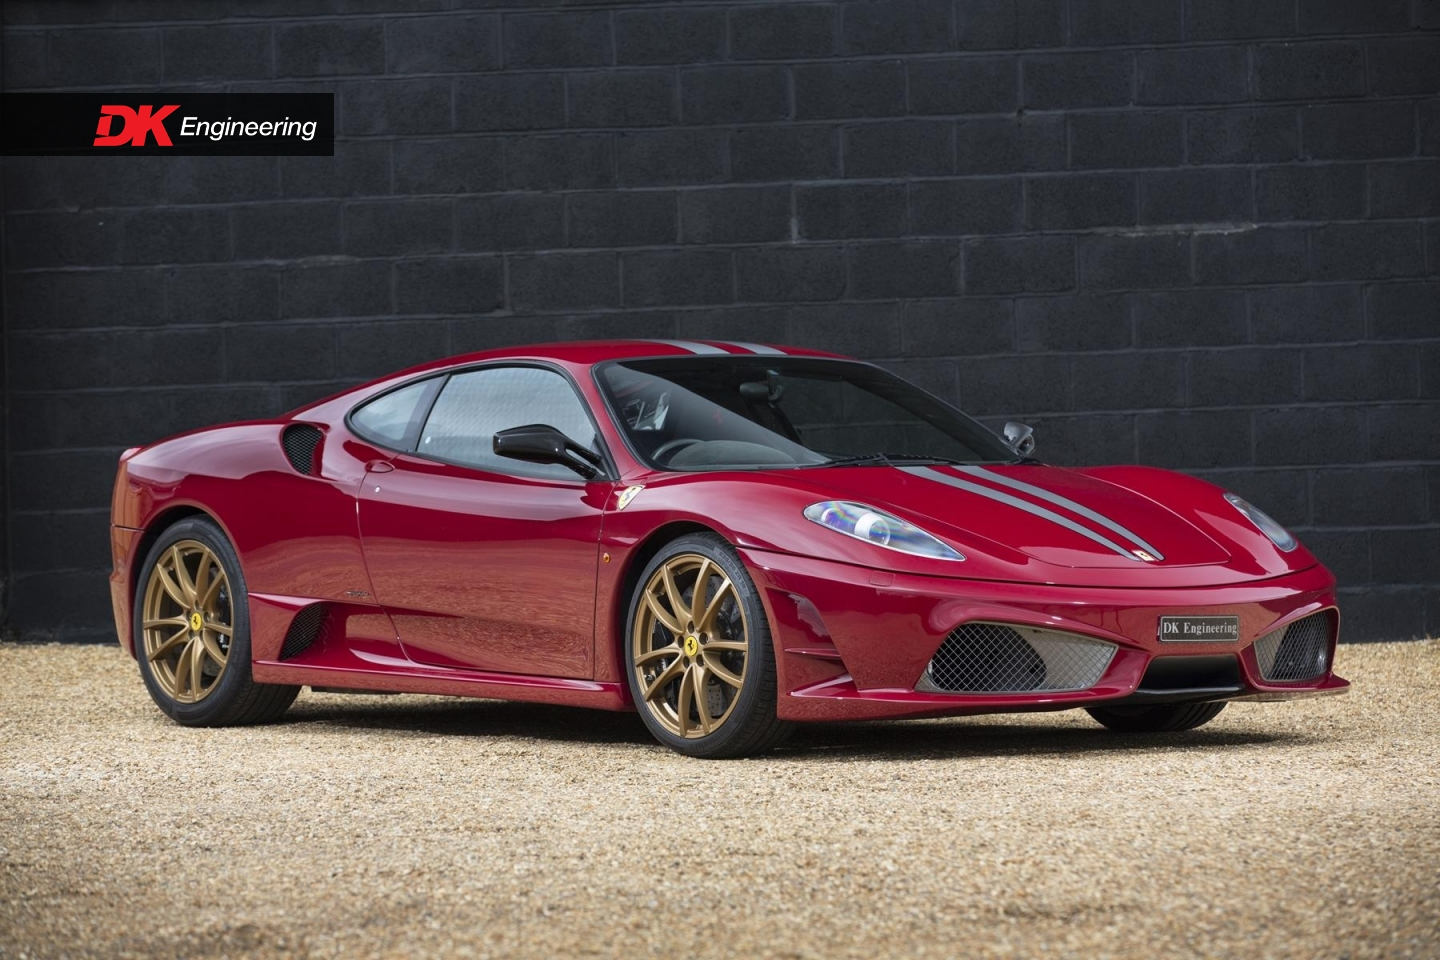 rosso mugello ferrari 430 scuderia for sale at 204 995 in the uk gtspirit. Black Bedroom Furniture Sets. Home Design Ideas